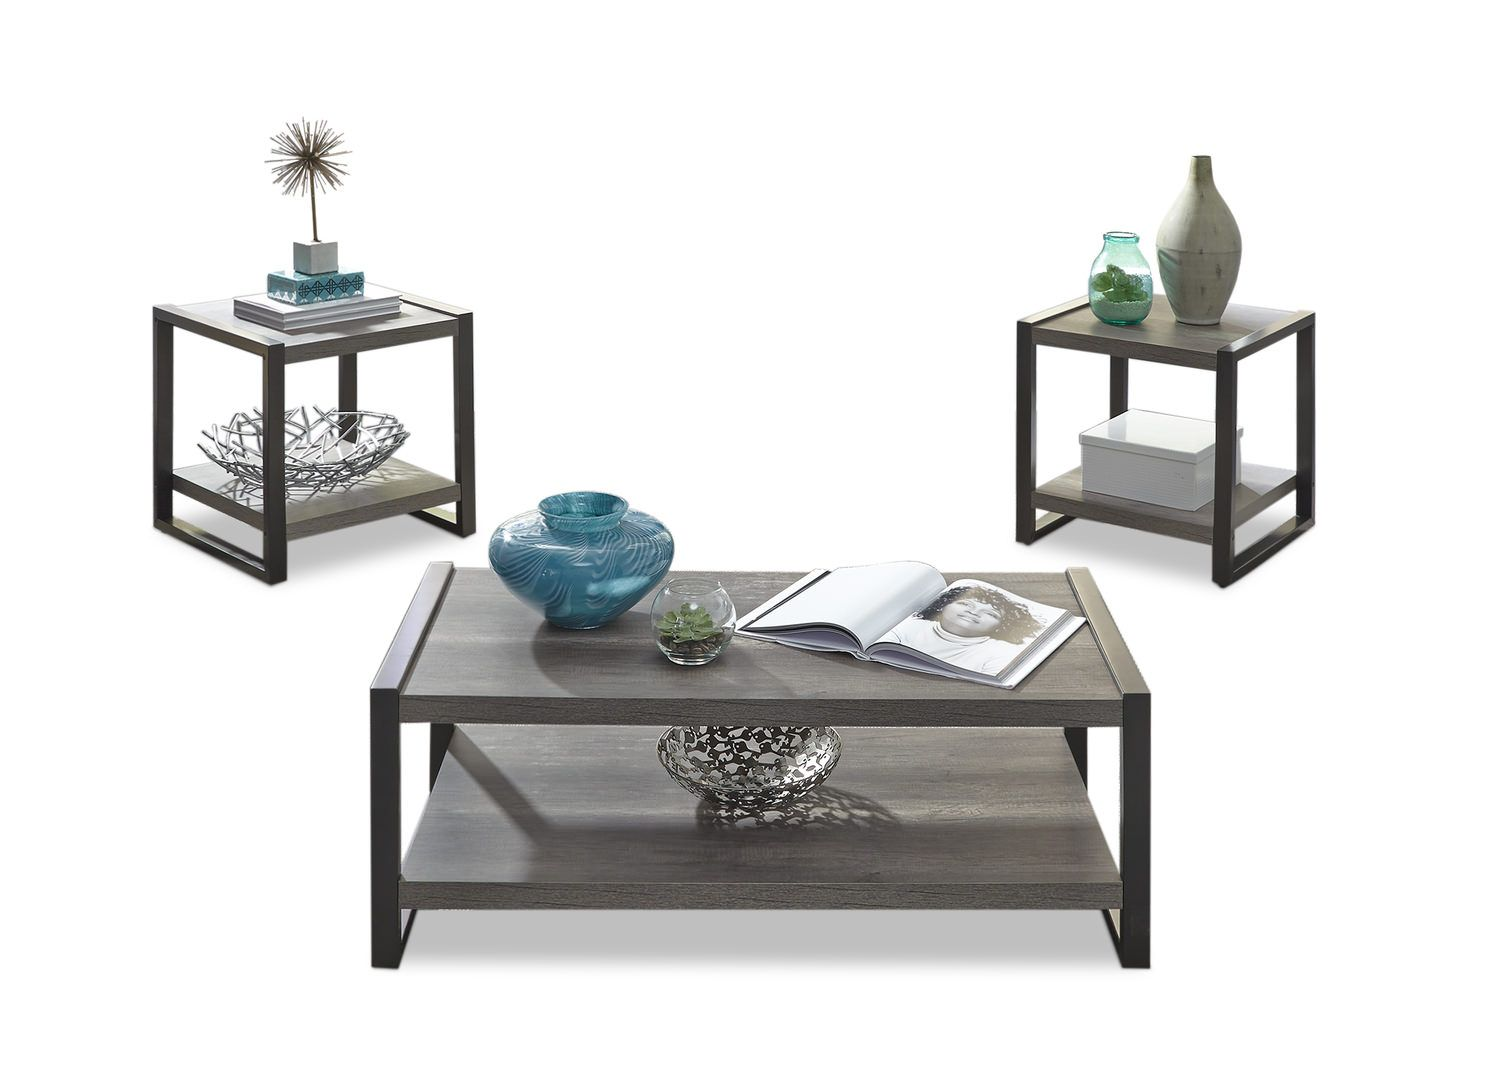 Tanner Tables Set Of 3 Hom Furniture Hom Furniture Table Settings Table [ 1078 x 1500 Pixel ]